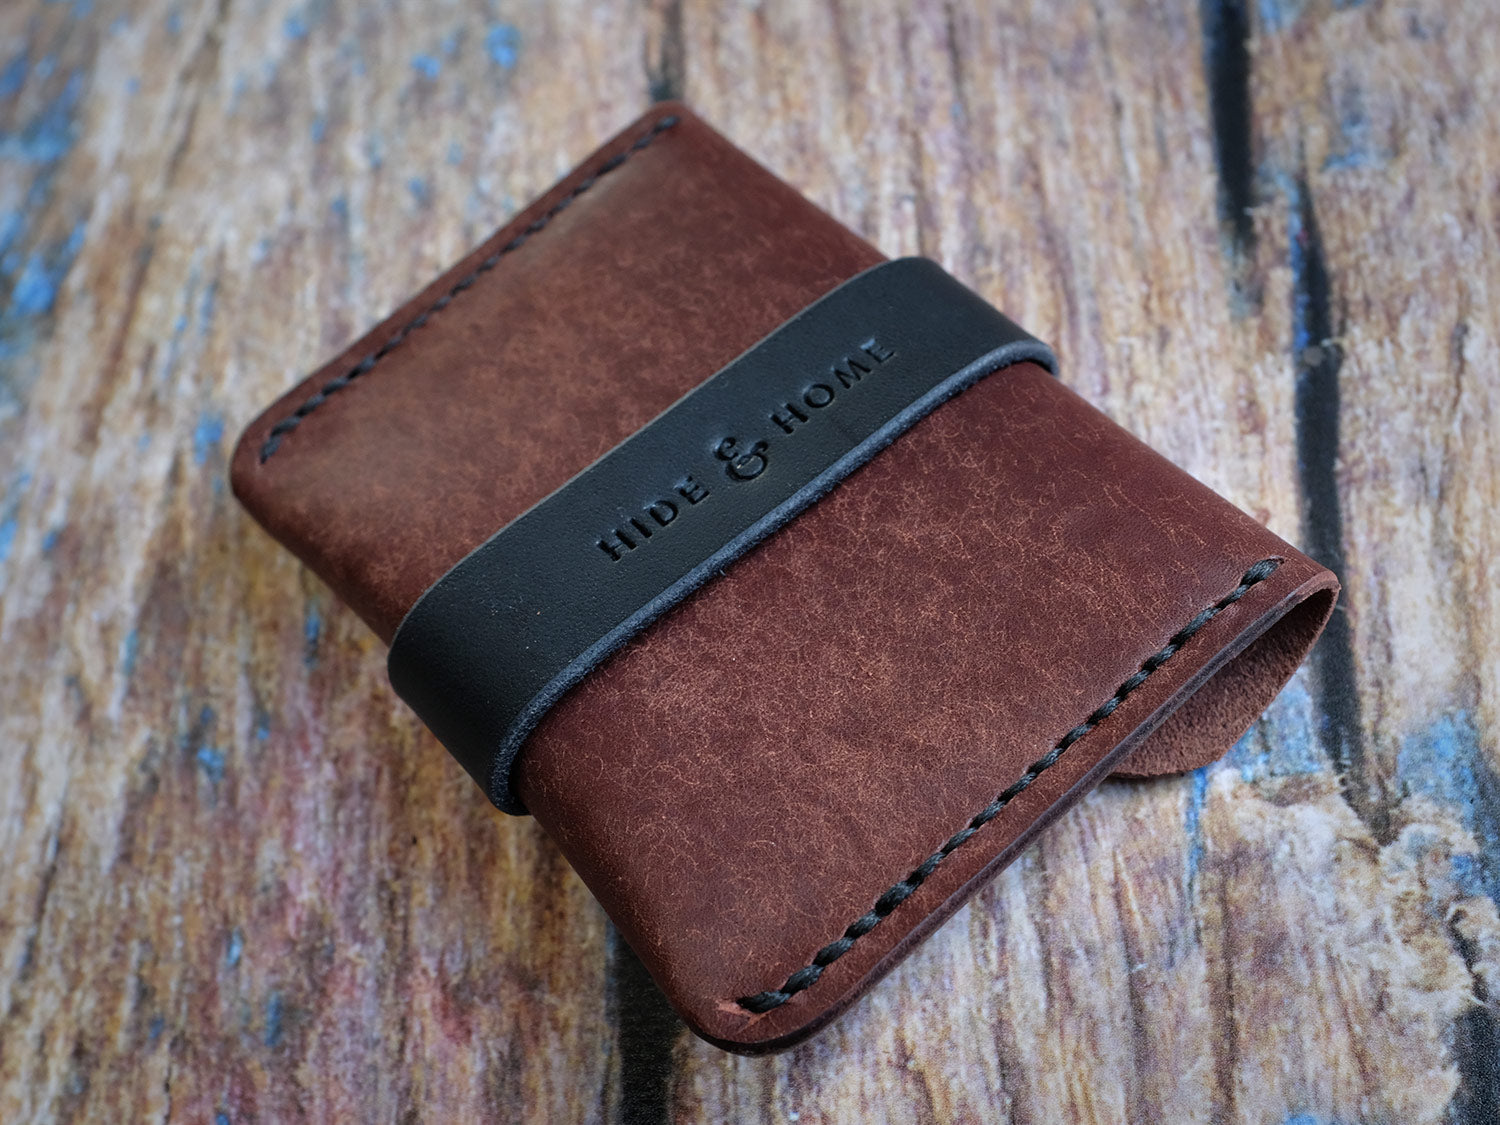 Italian Leather Strap Wallet